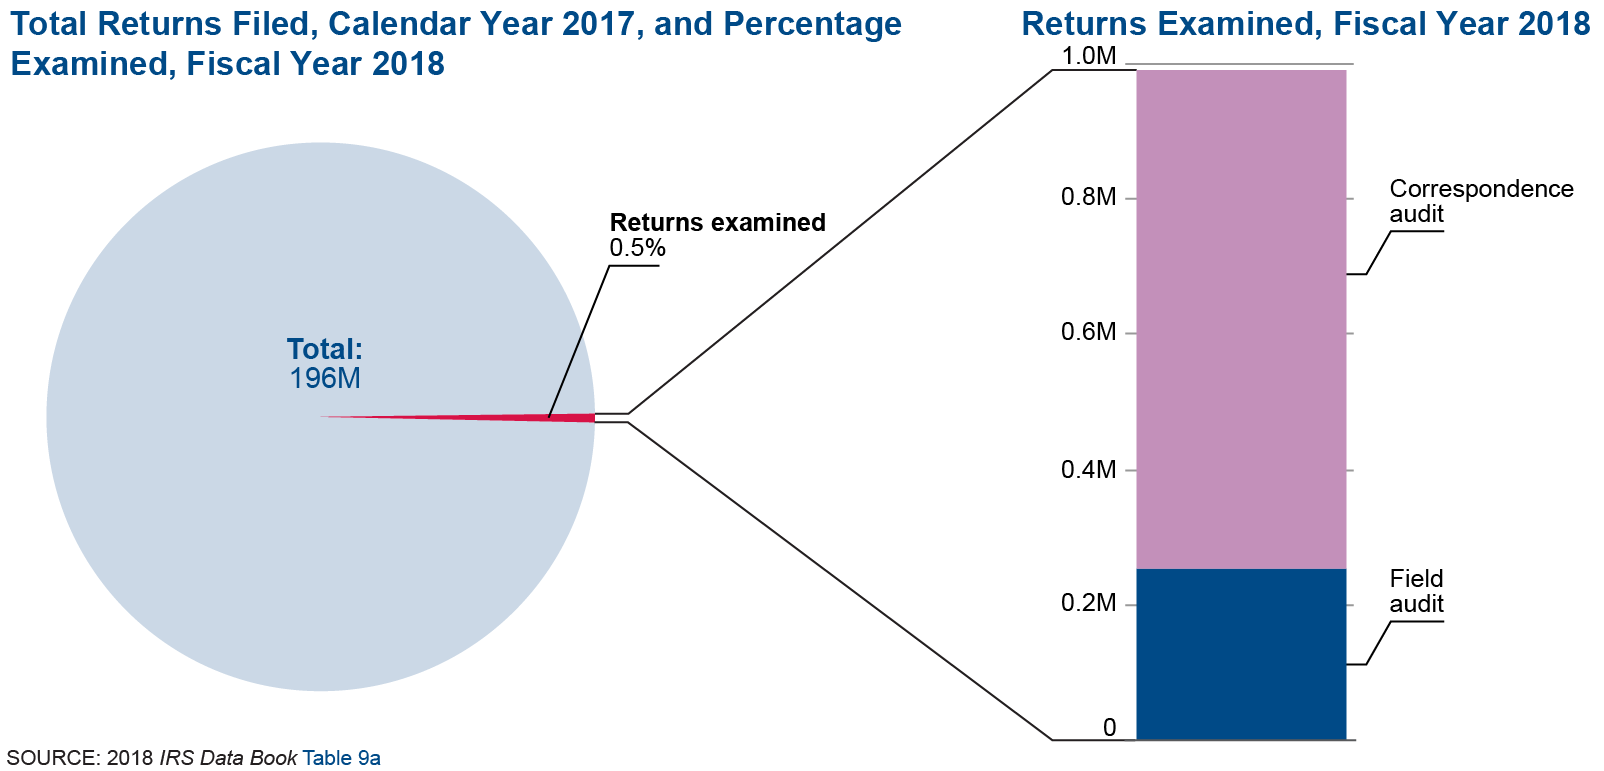 Two charts showing the total number of returns examined and the method in which the returns were examined in fiscal year 2018. A majority of the returns examined were through correspondence examination